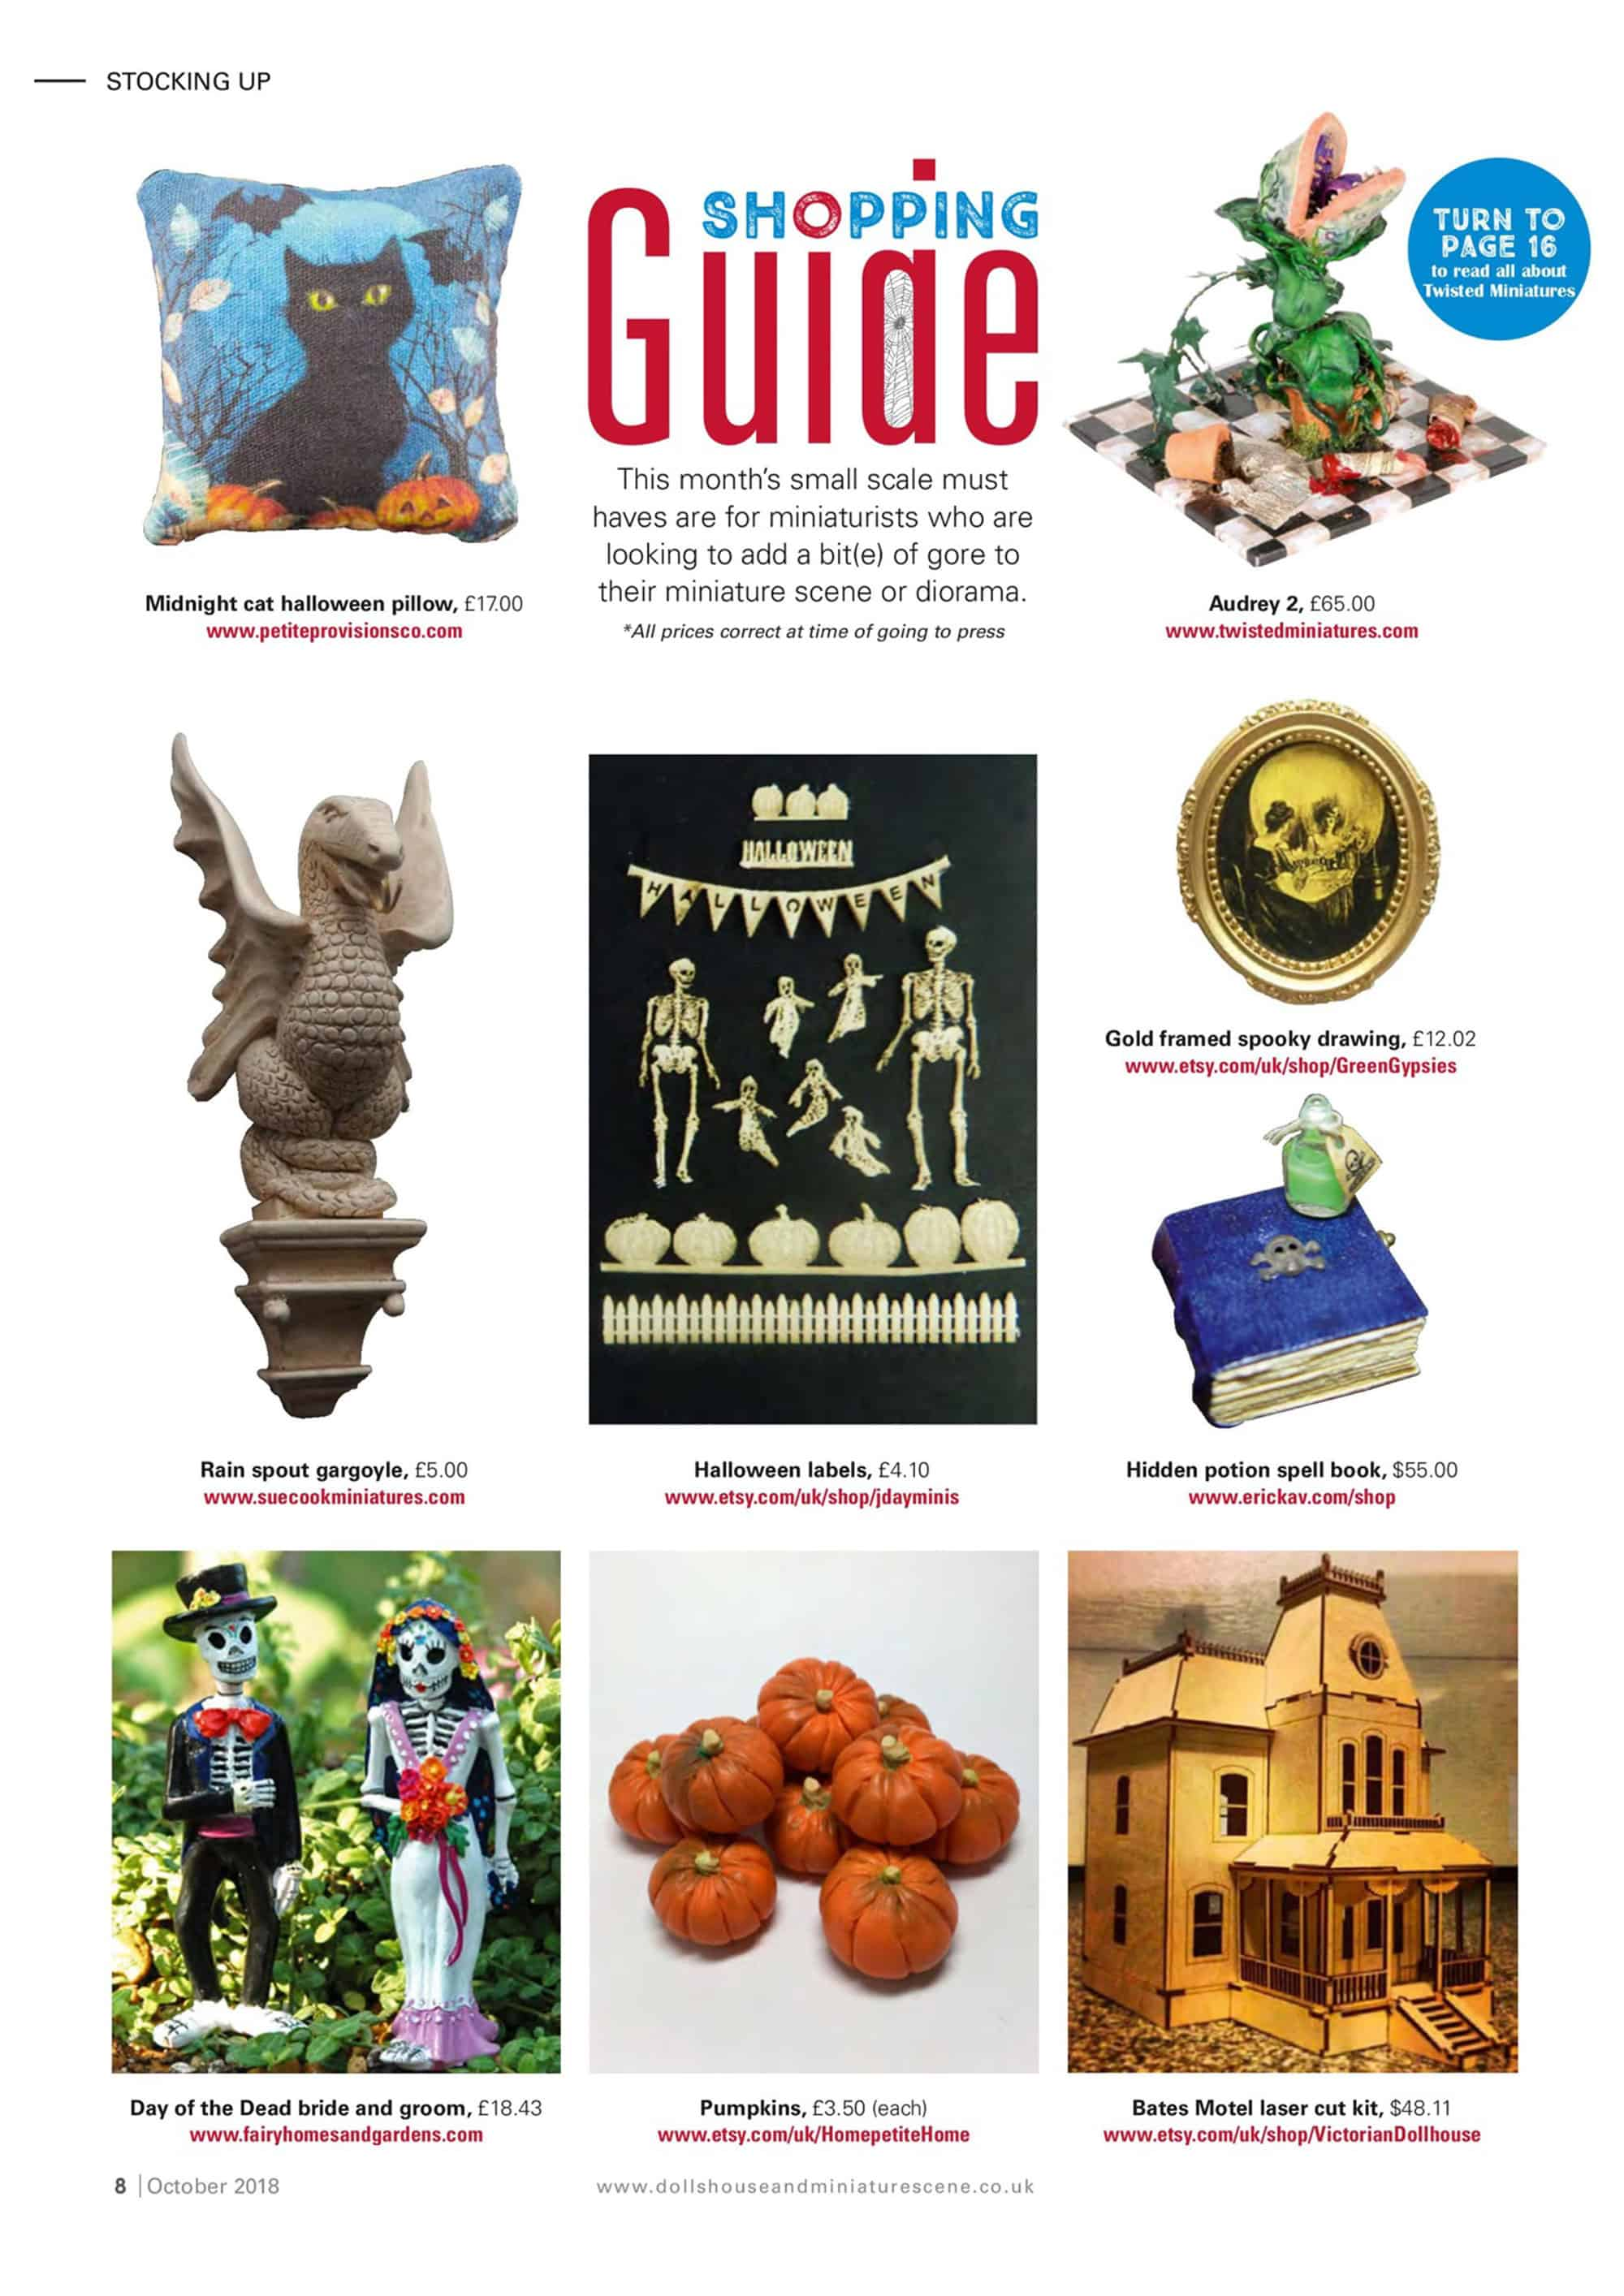 Featured in the October 2018 Issue of DollsHouse & Miniature Scene